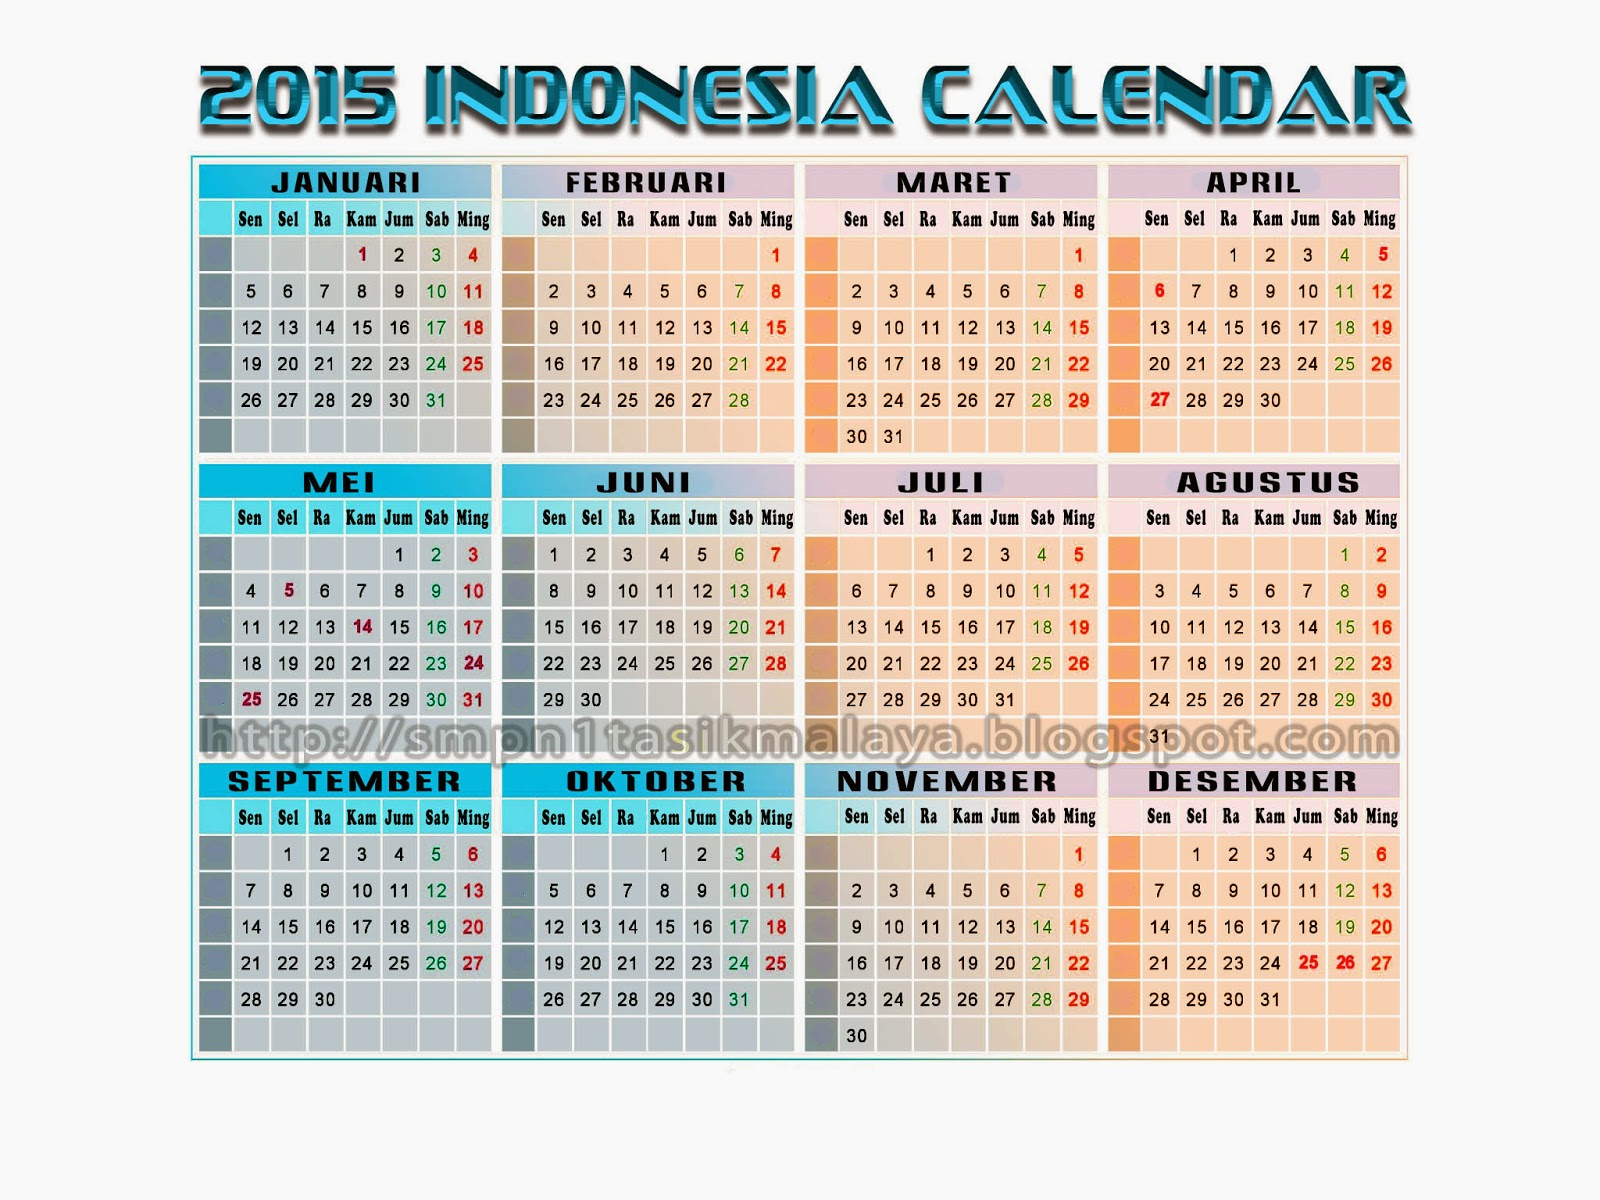 kalender online download kalender indonesia islam jawa auto design tech. Black Bedroom Furniture Sets. Home Design Ideas